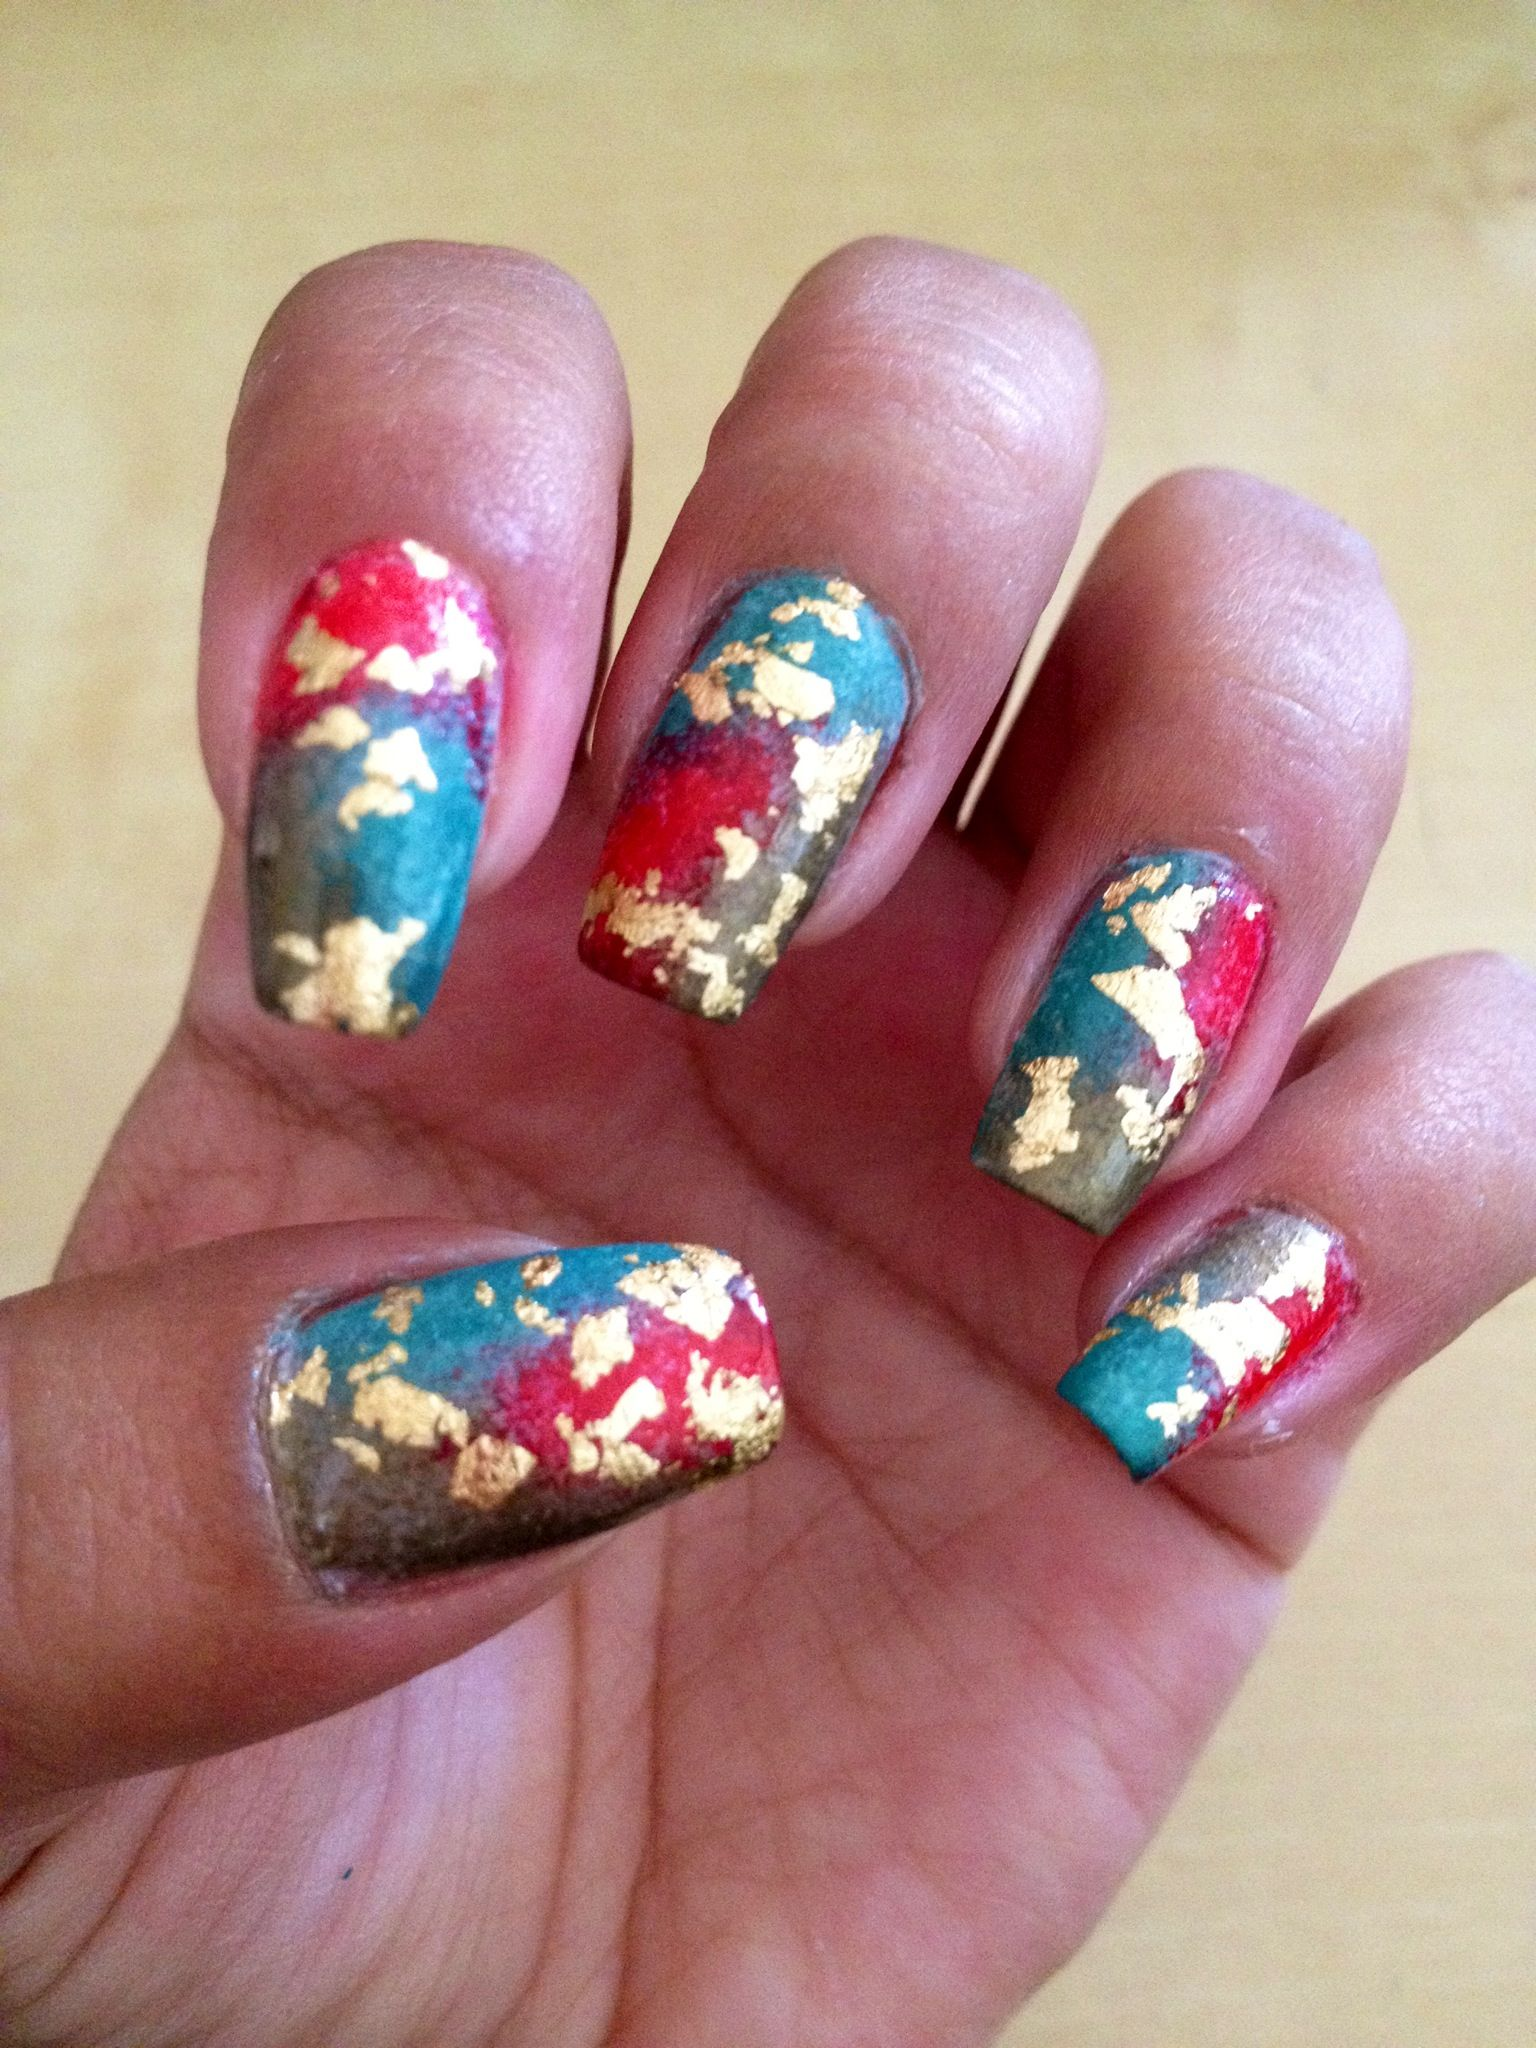 My Nails of the Day!!! #nailart #nails #manicure #newmanicure #NOTD #goldleaf #goldleafmanicure